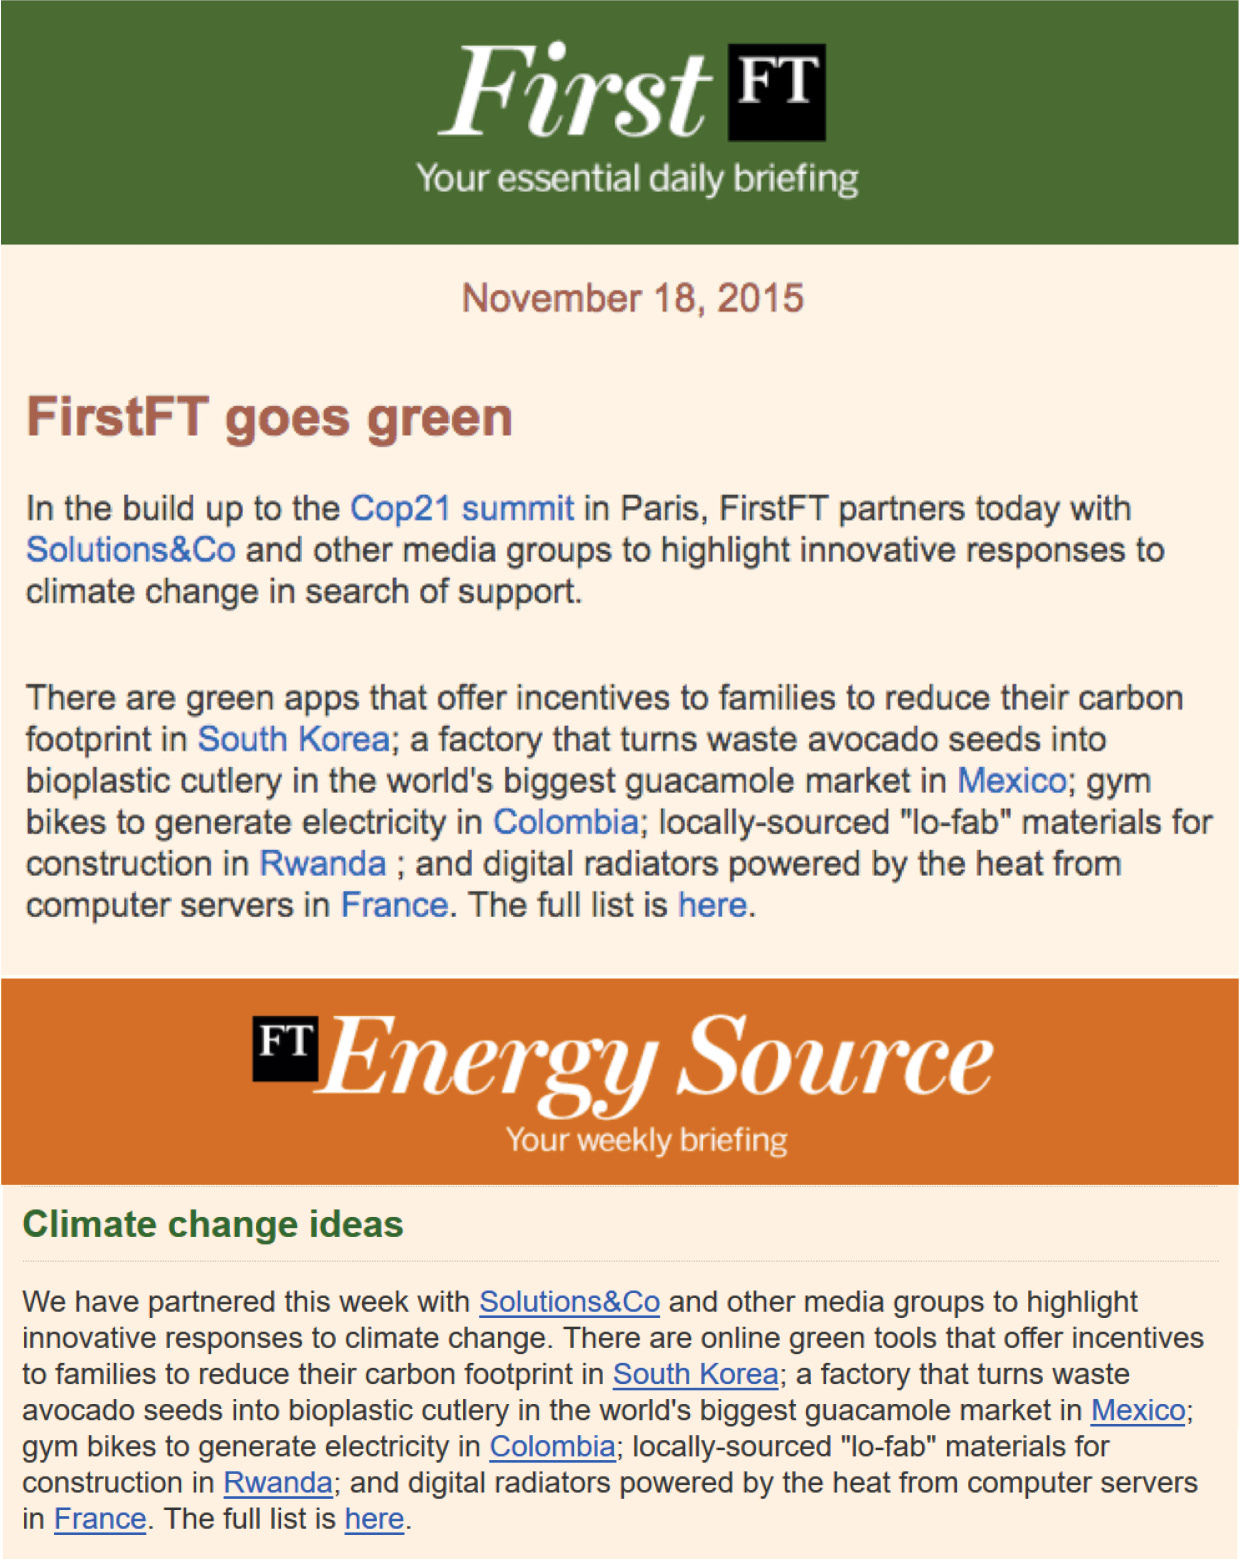 solutions&co sparknews financial times green energy media journal economic climate